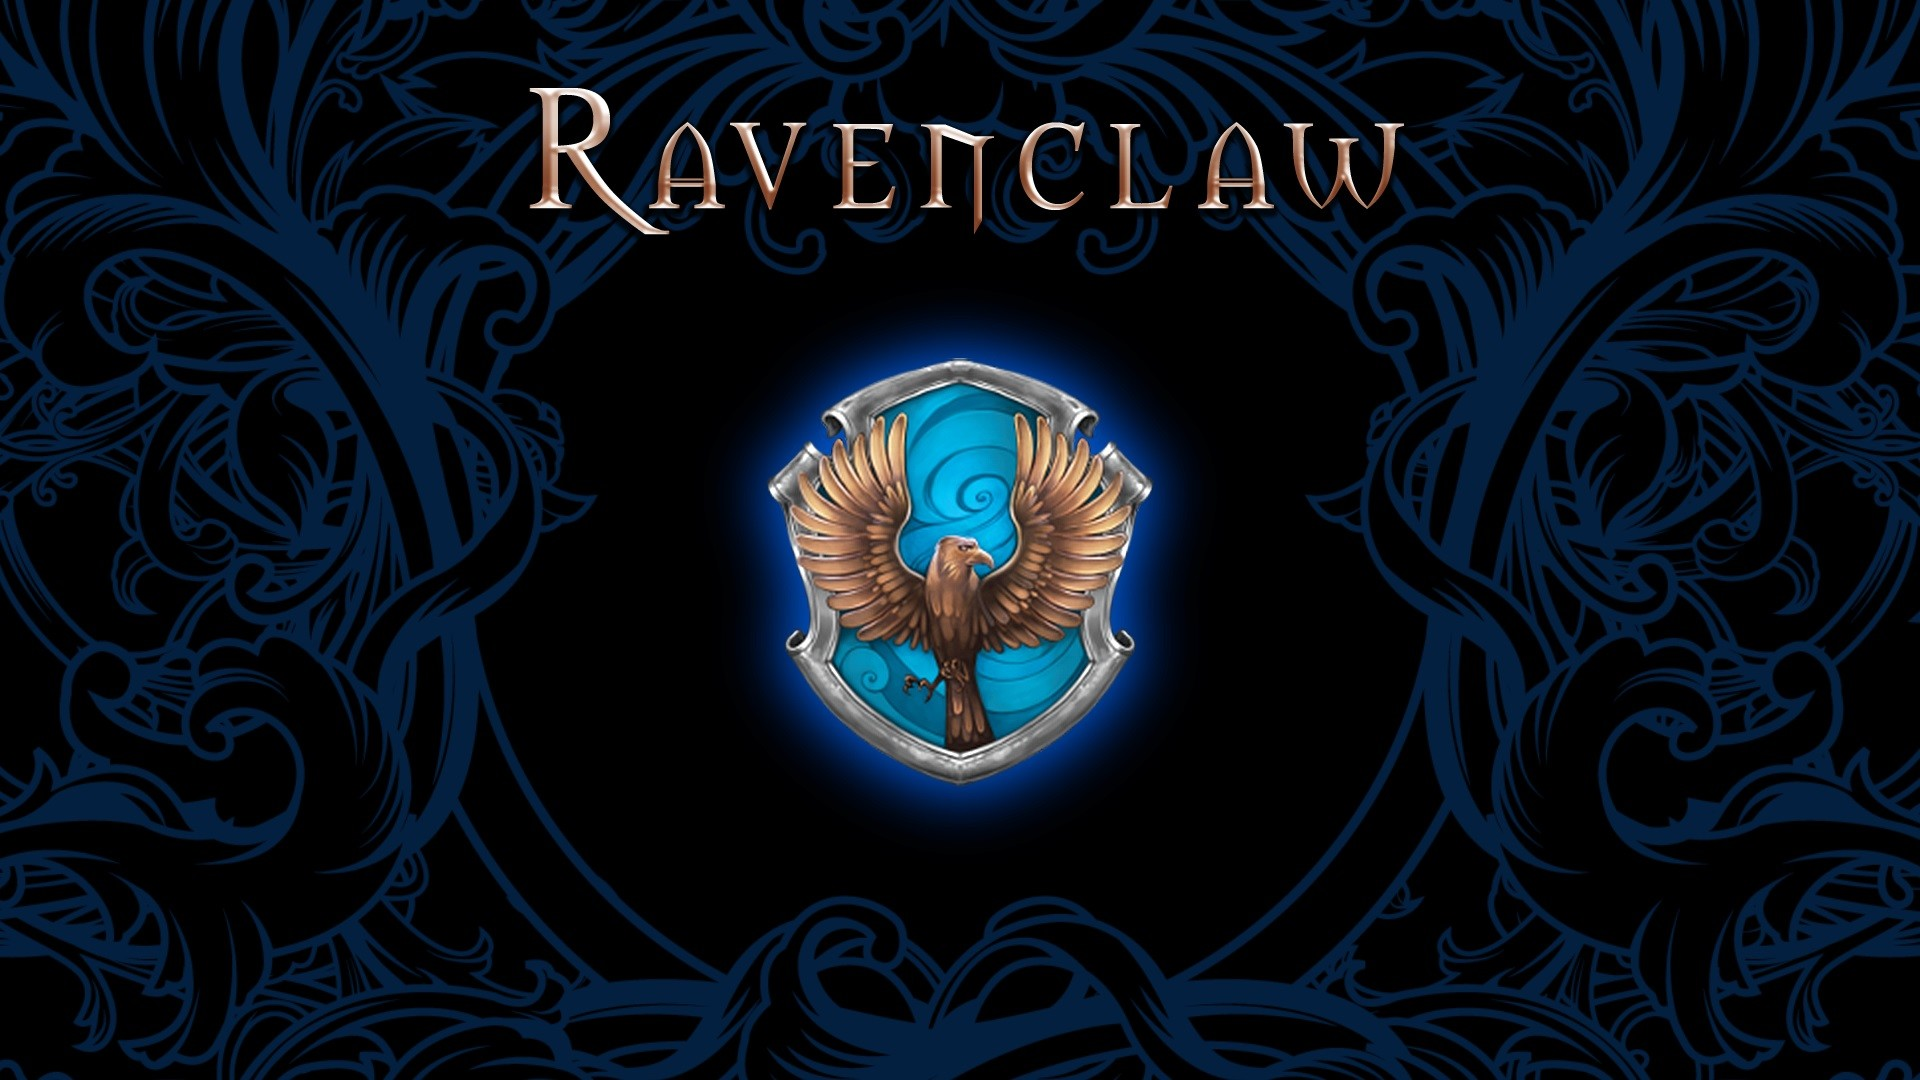 Download Wise Quotes Wallpapers Ravenclaw Wallpapers 76 Background Pictures